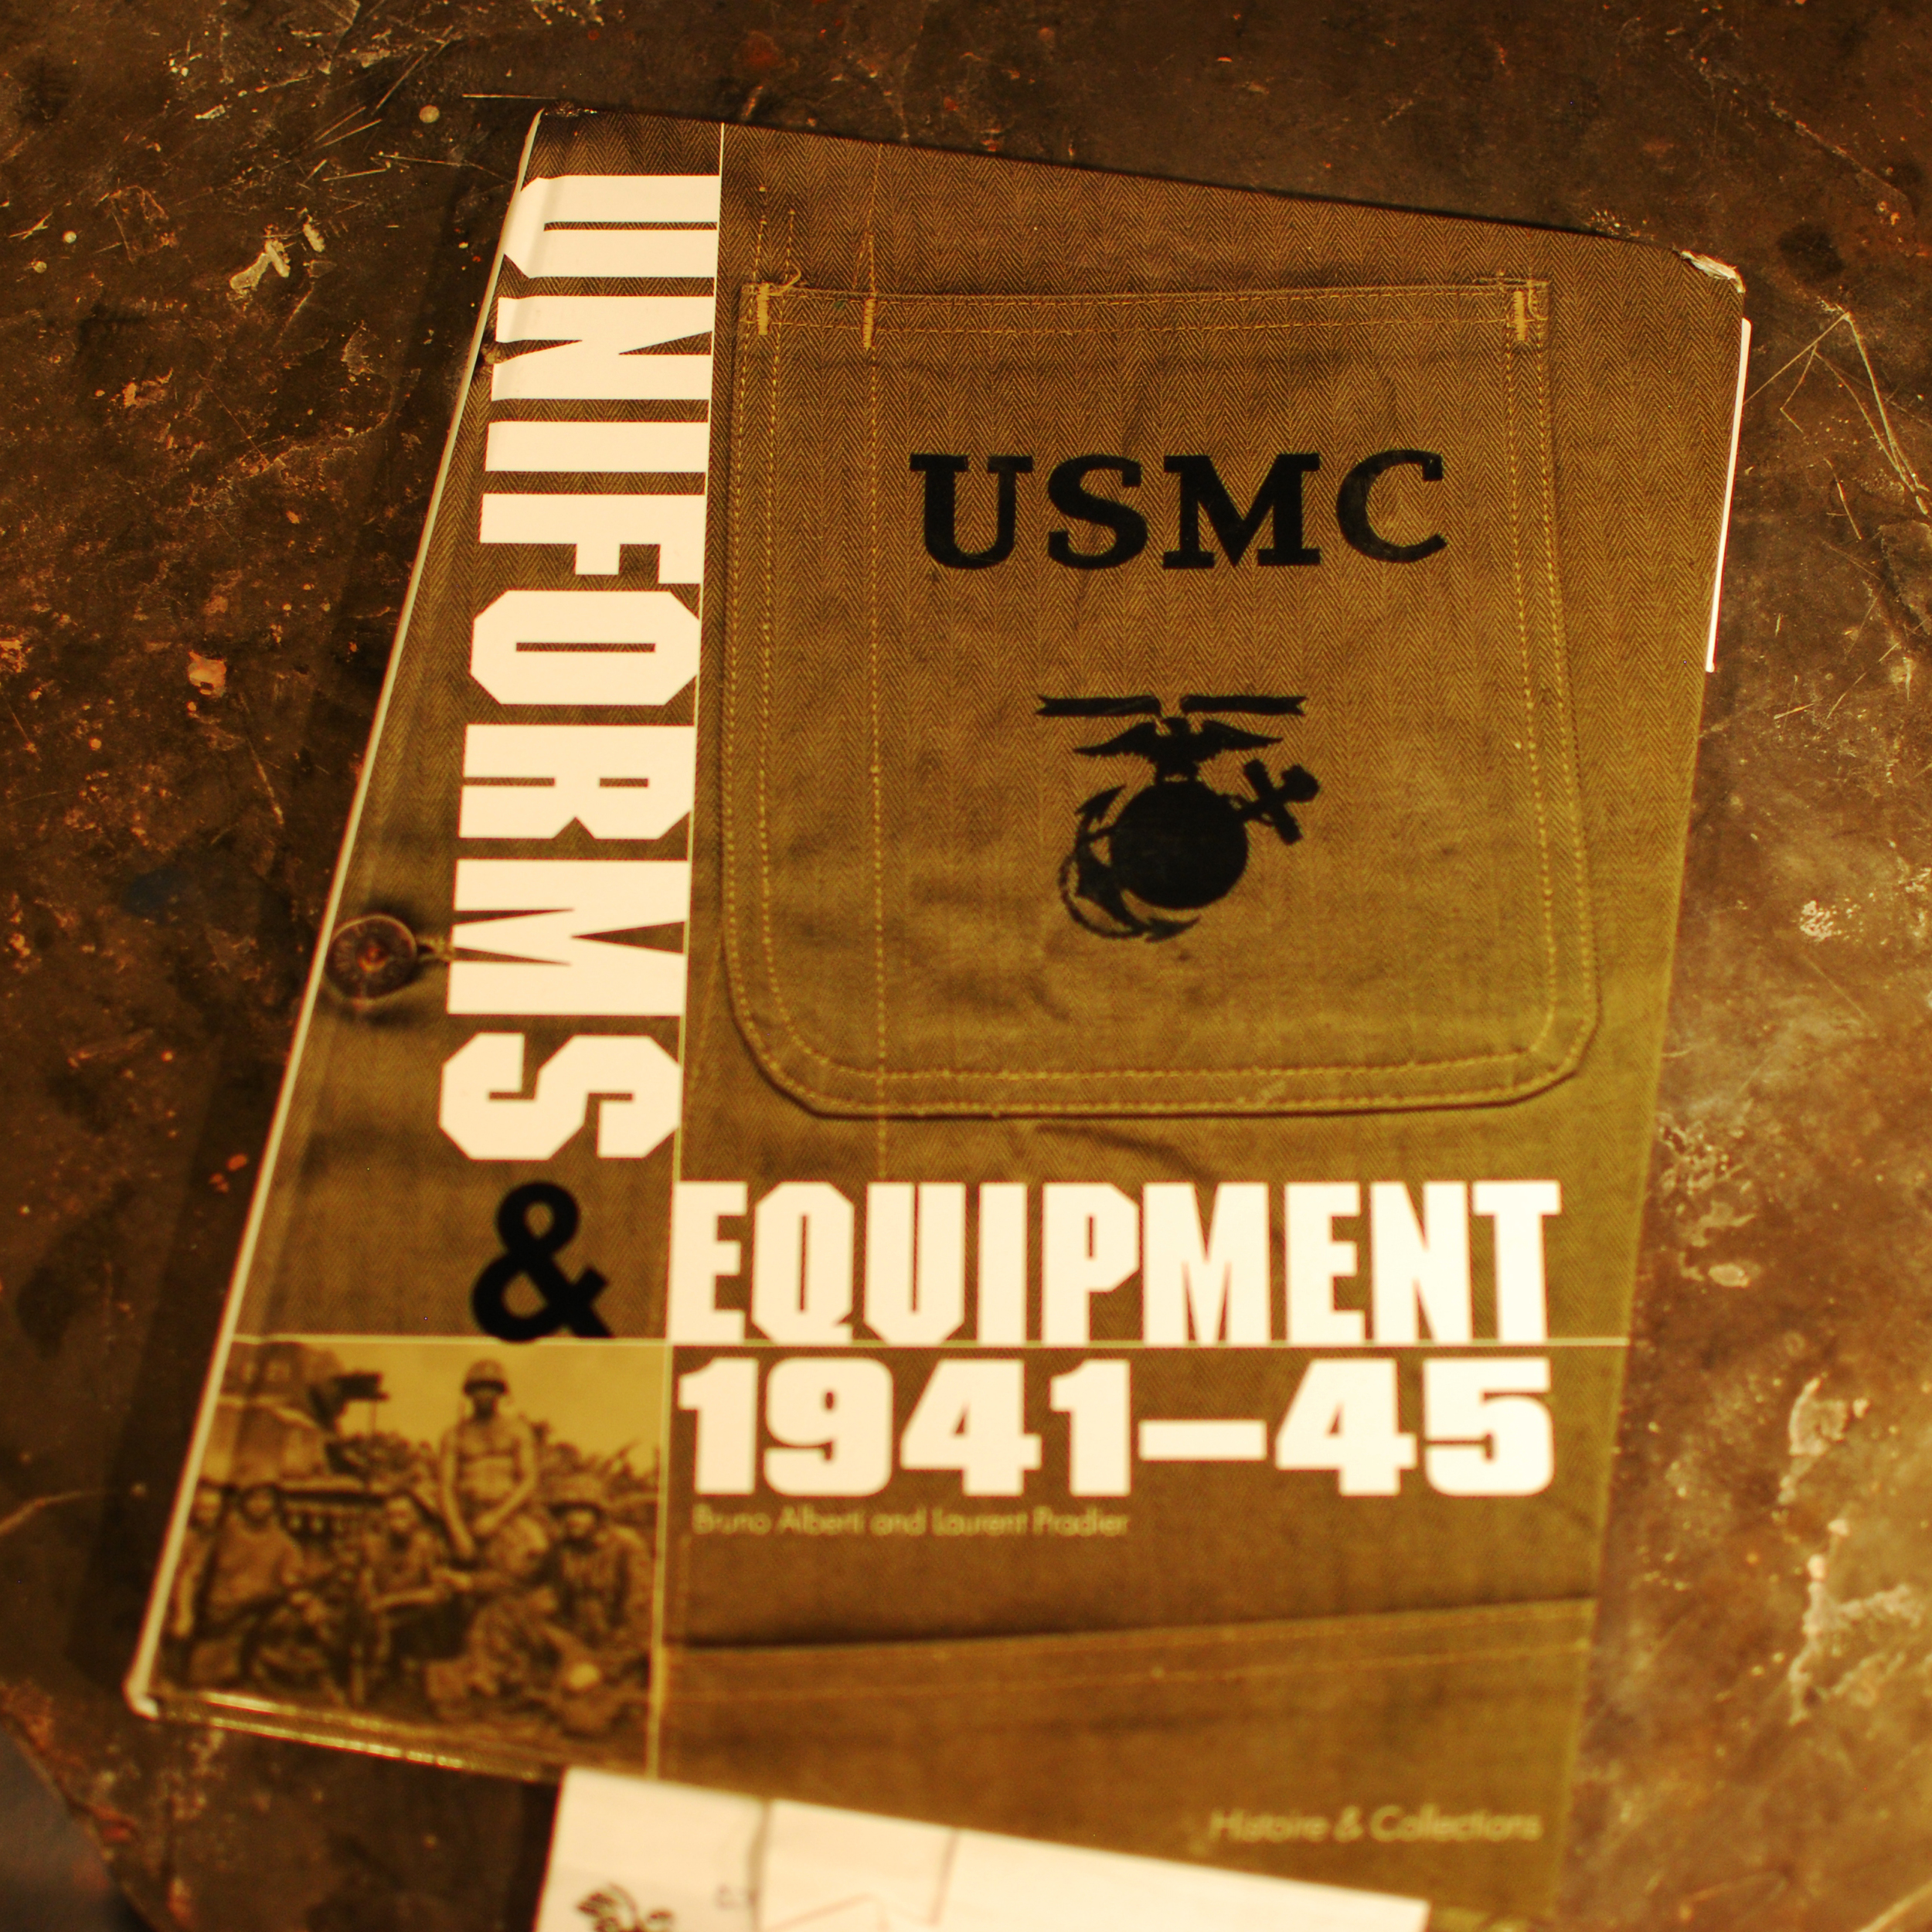 'USMC Uniforms & Equipment'